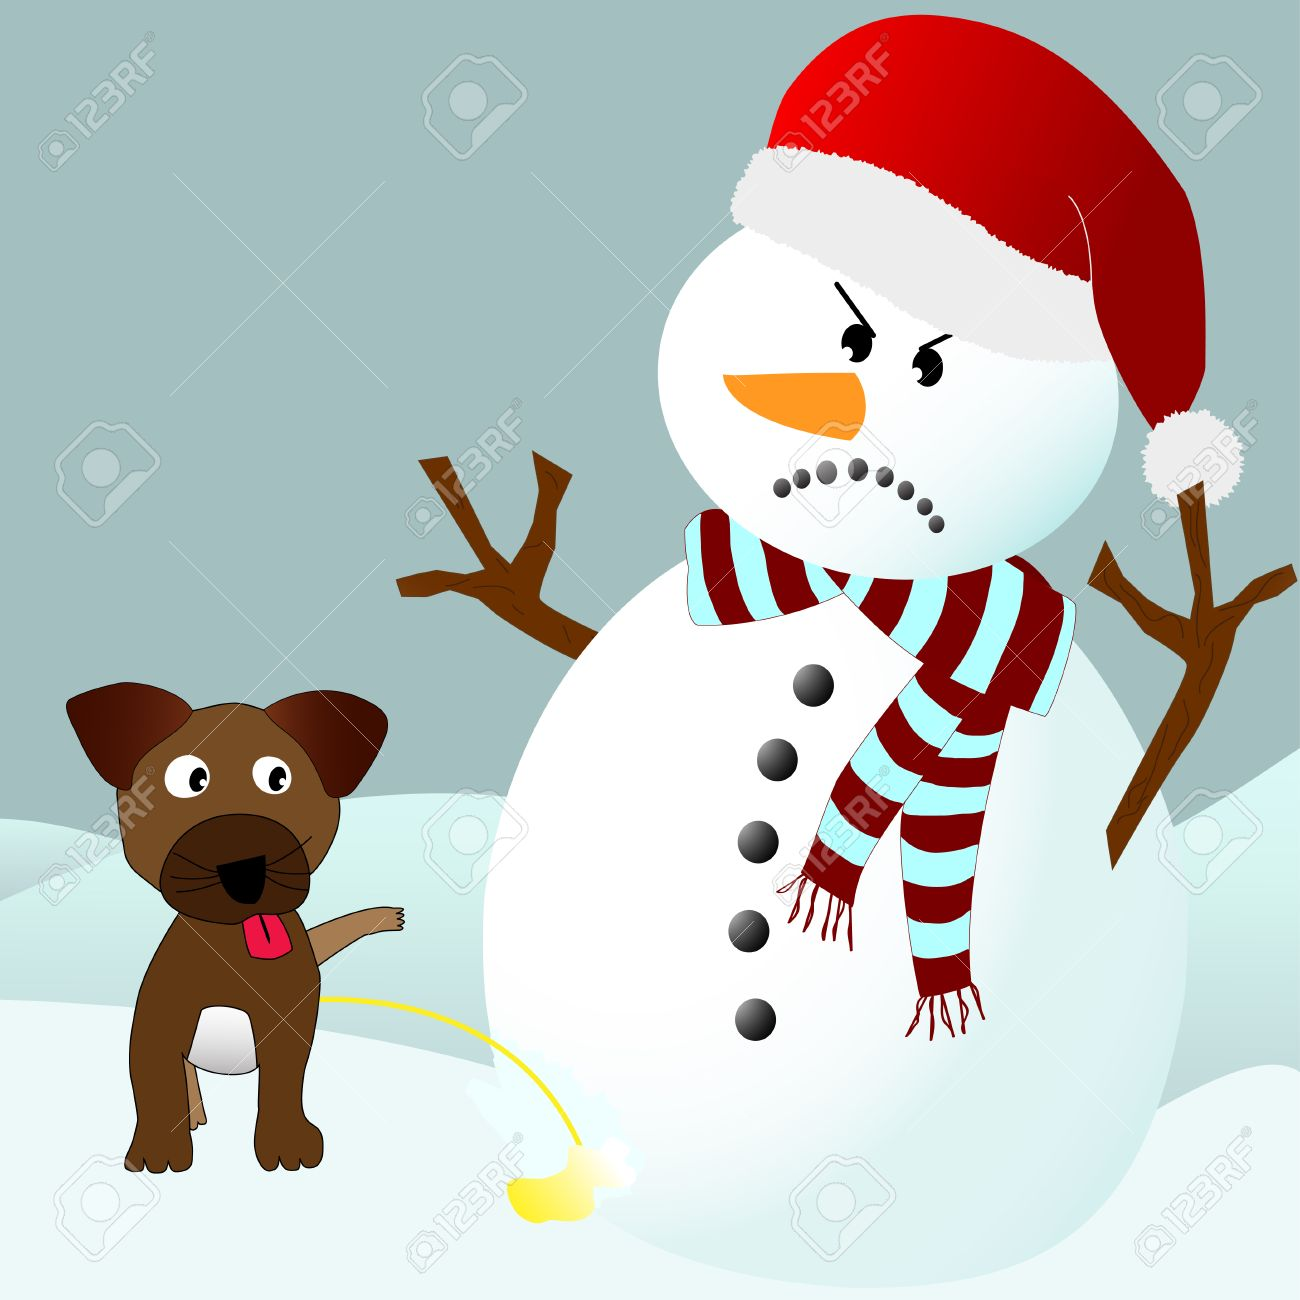 Cute puppy dog peeing on an angry snowman in a winter environment Stock Vector - 8346392